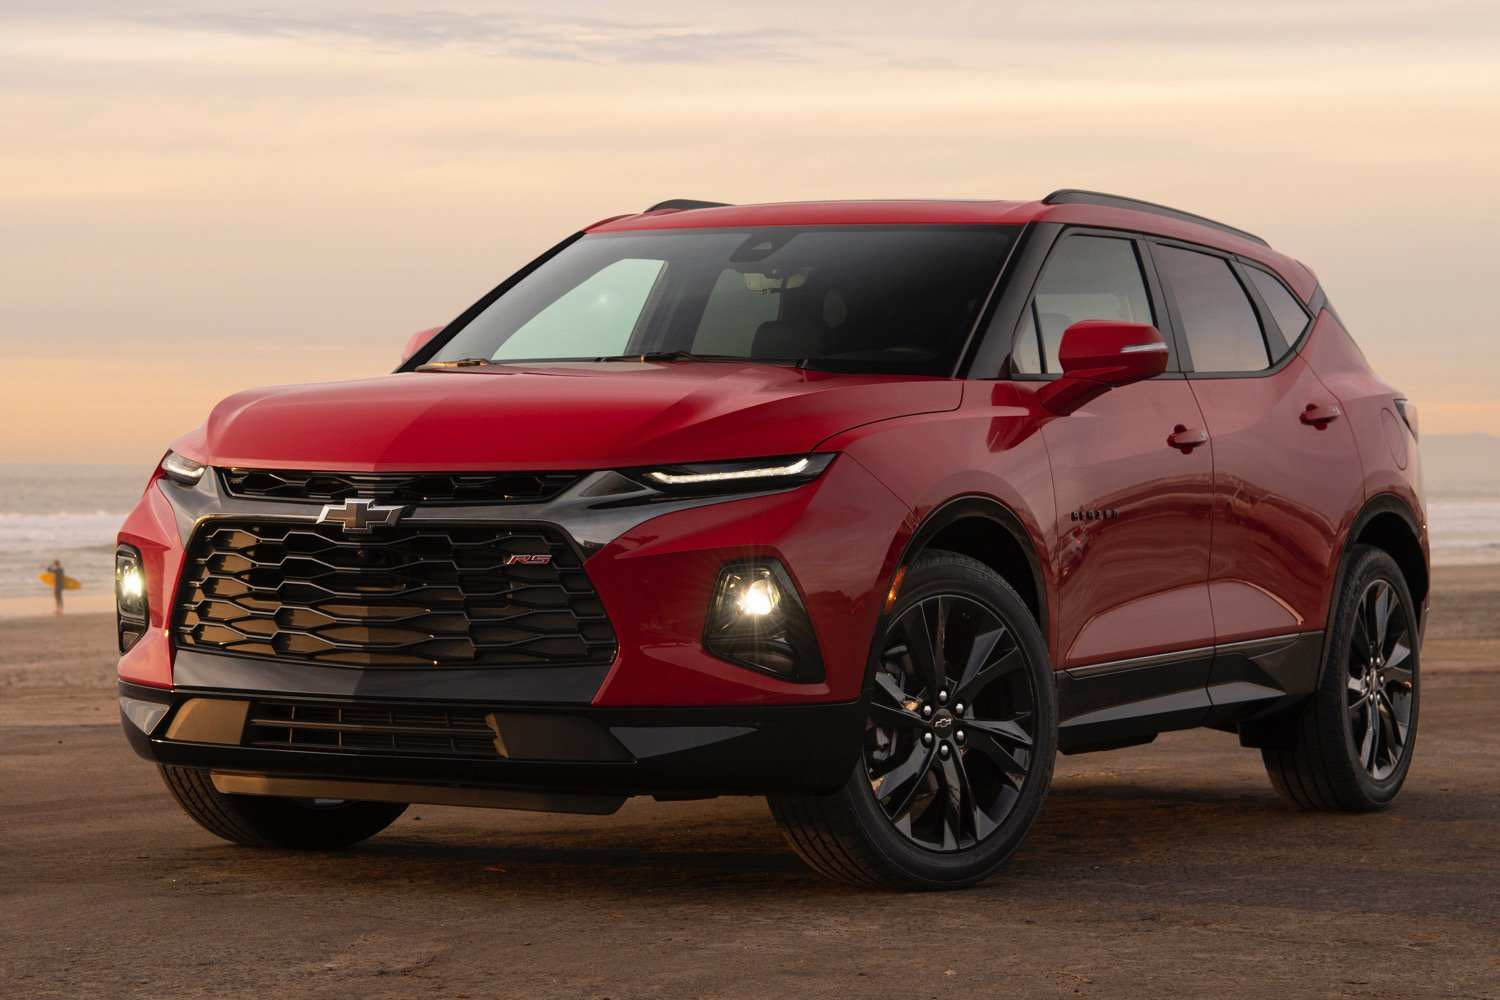 41 New Chevrolet Blazer Xl 2020 Concept And Review